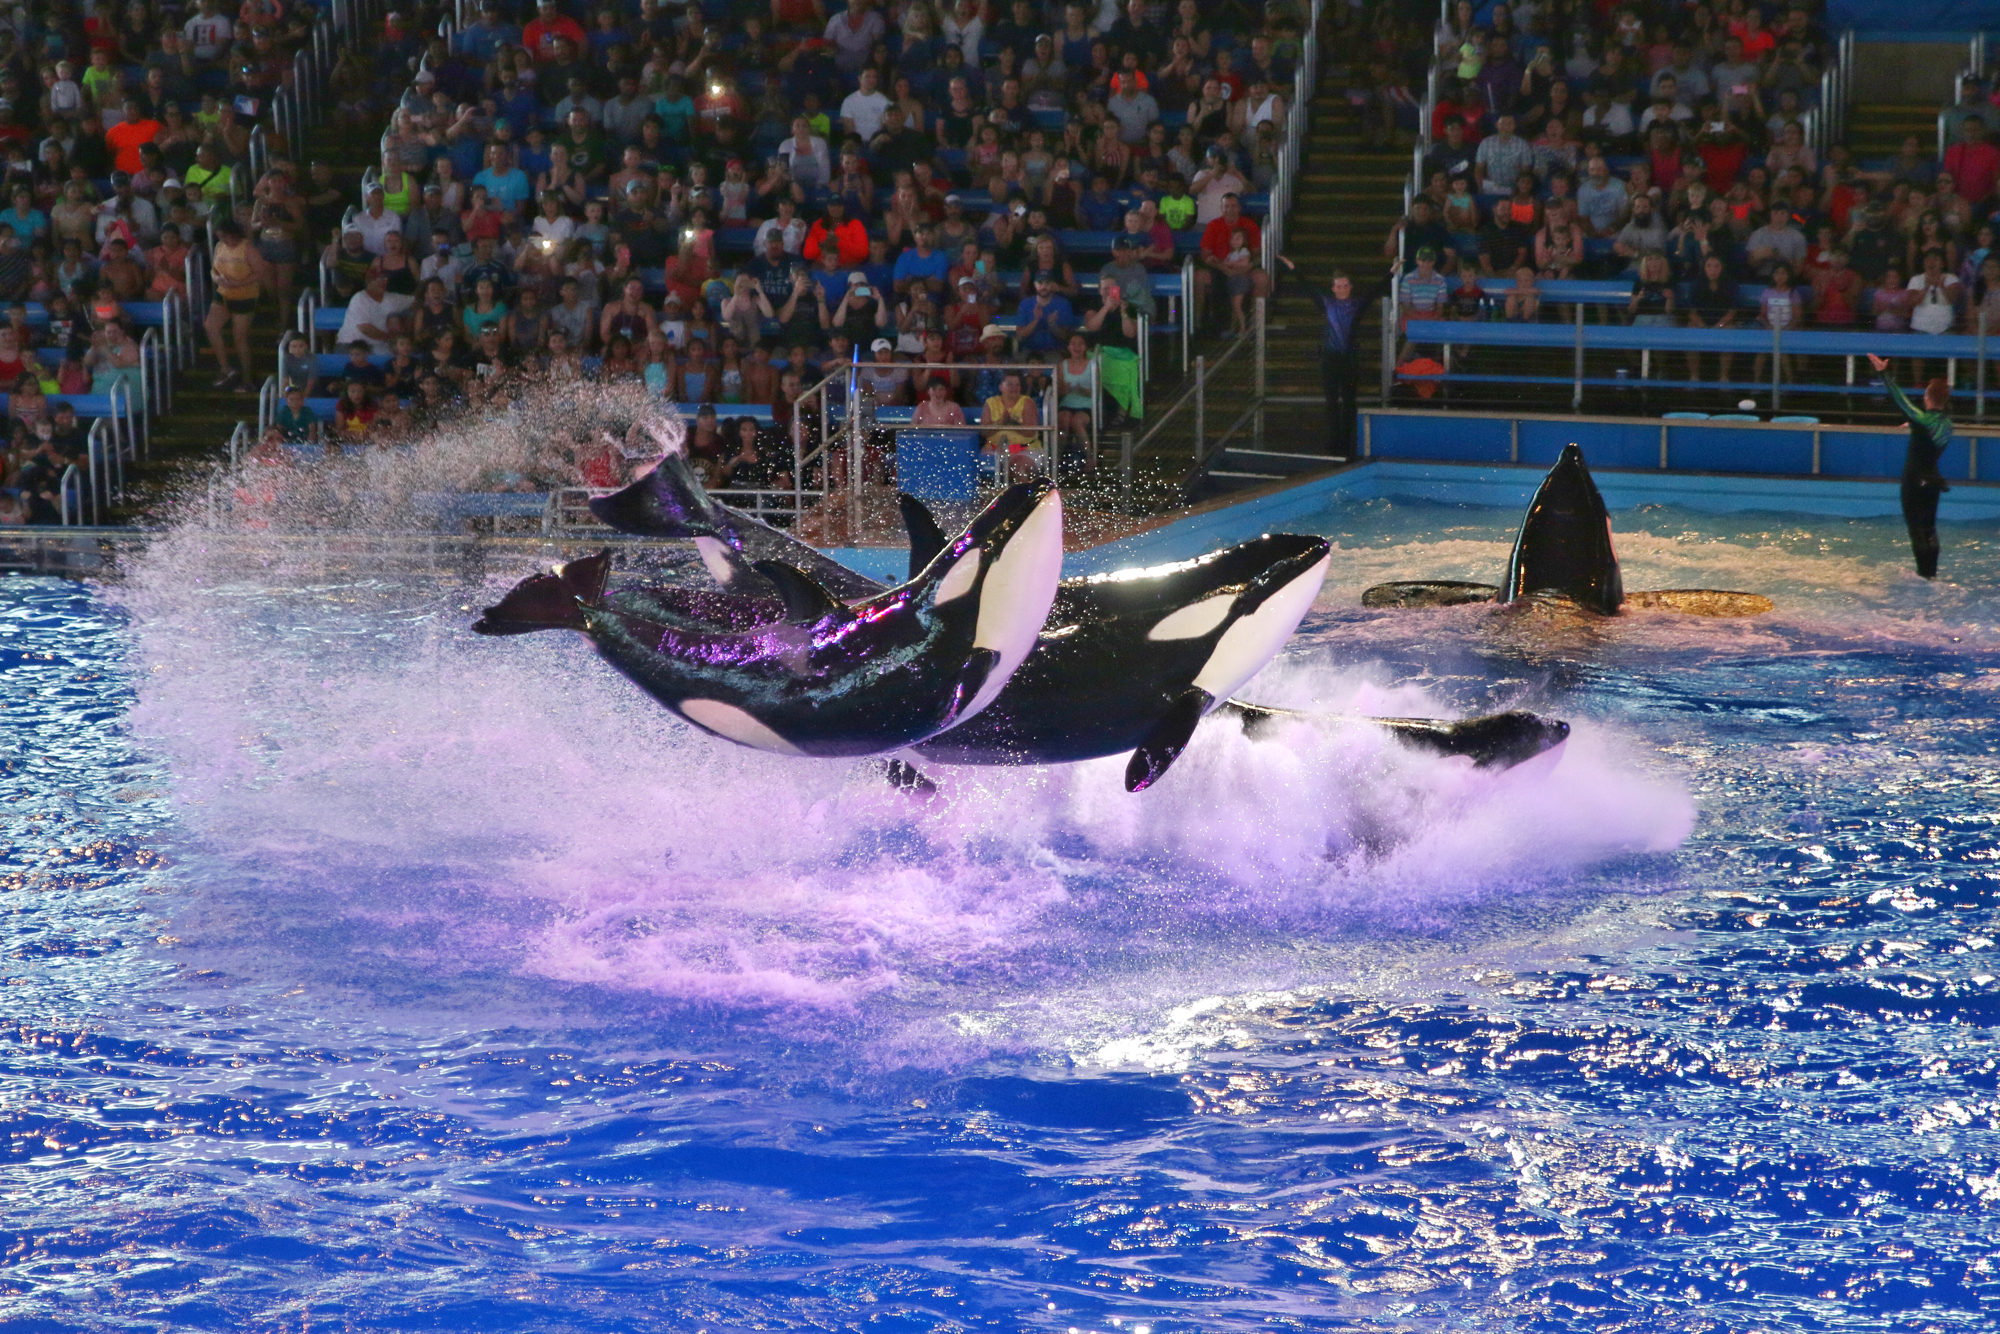 Shamu jumping out of water at SeaWorld